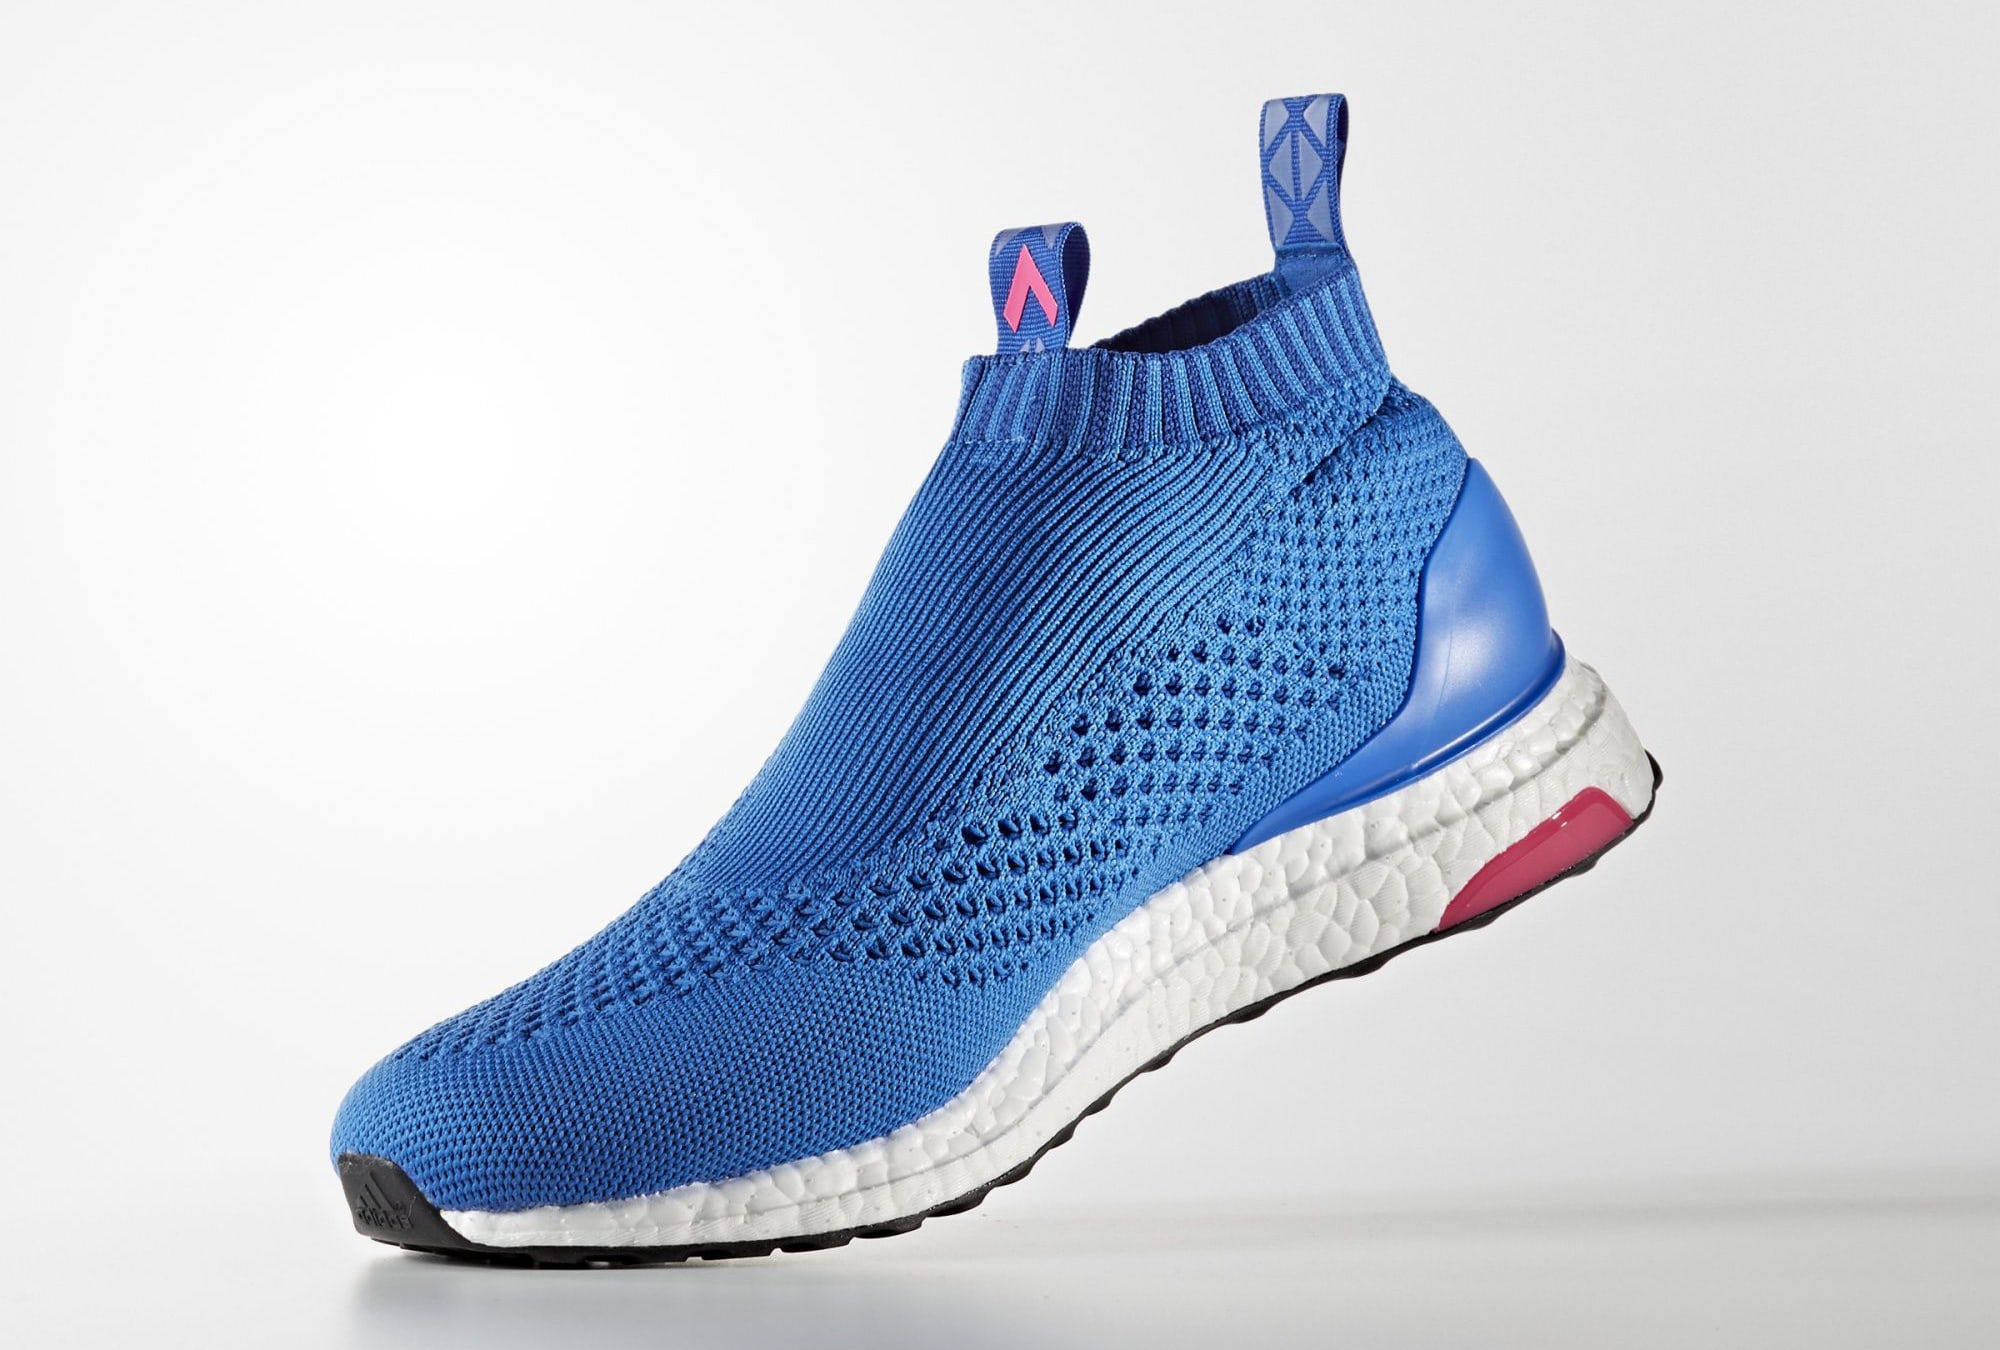 Adidas Ace 16 Pure Control Ultra Boost BY9090 Blue Pink Medial